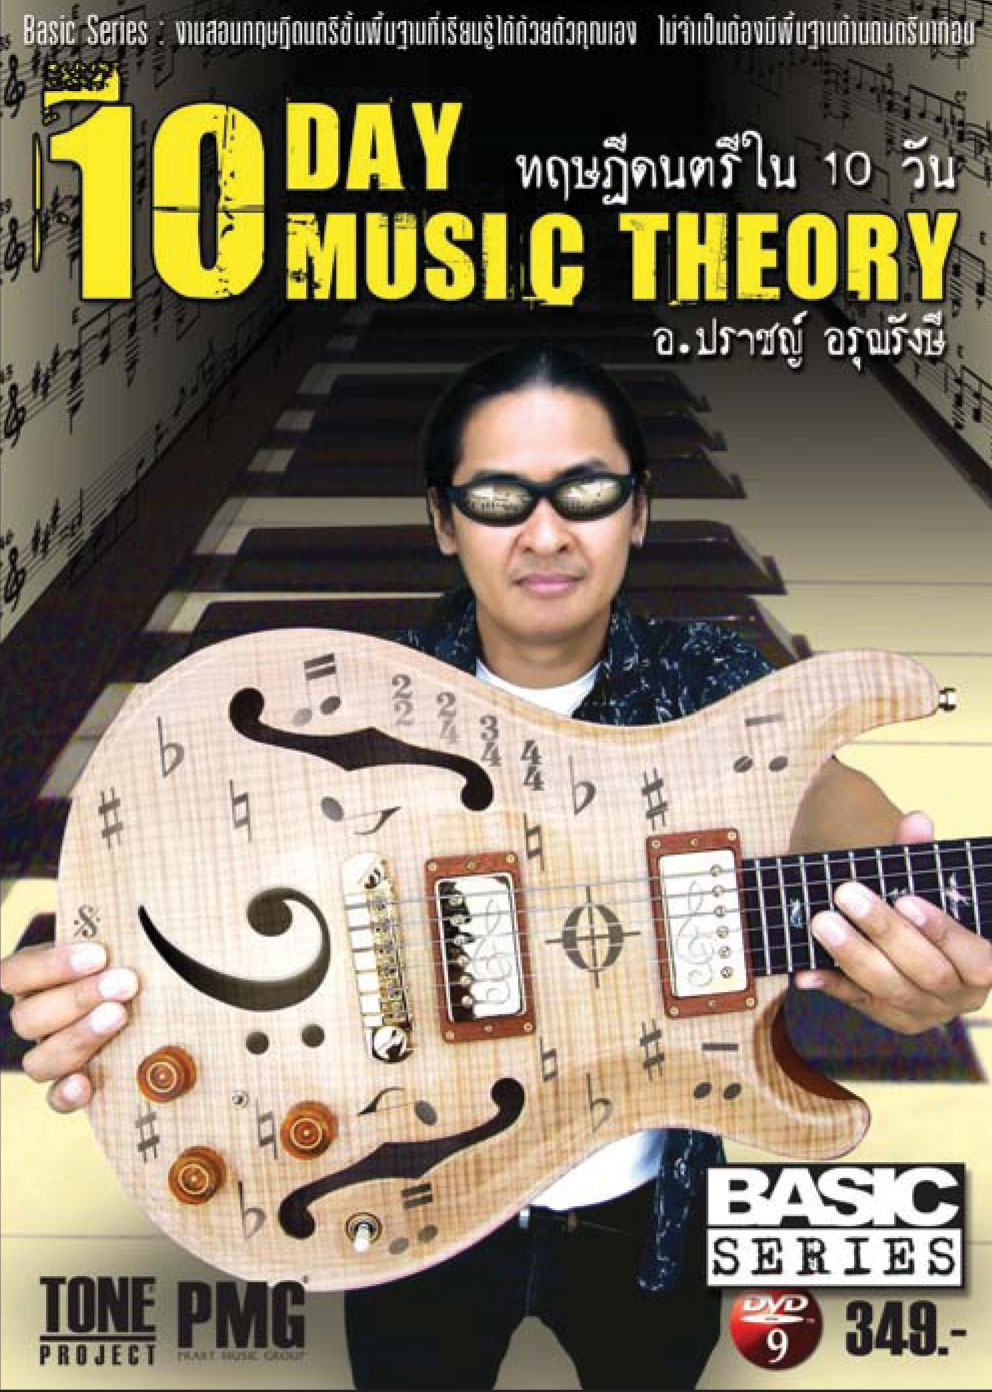 10 Day Music Theory (VCD)